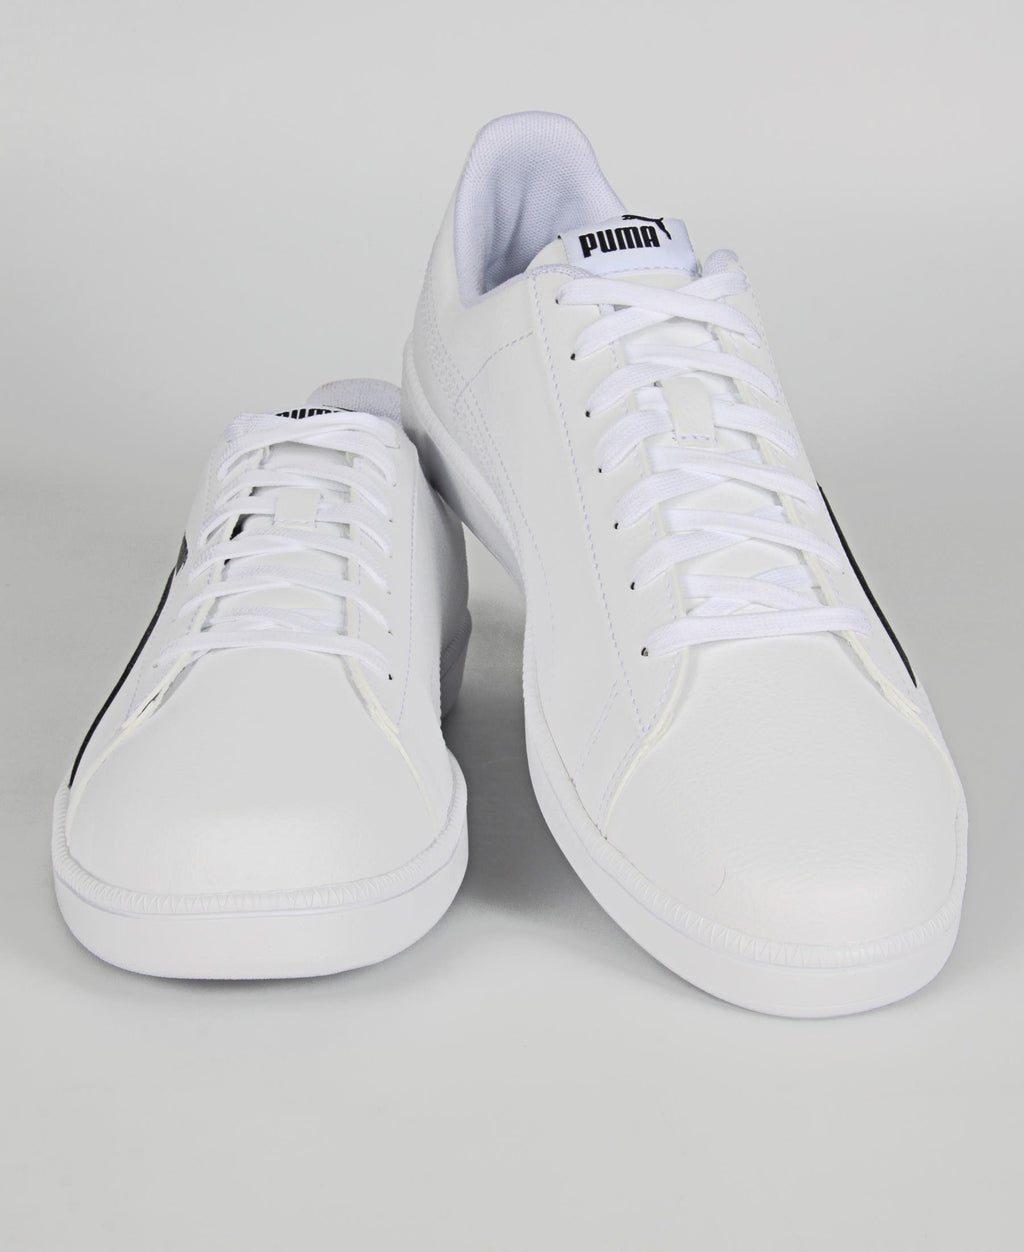 Men's Puma UP Sneakers  - White